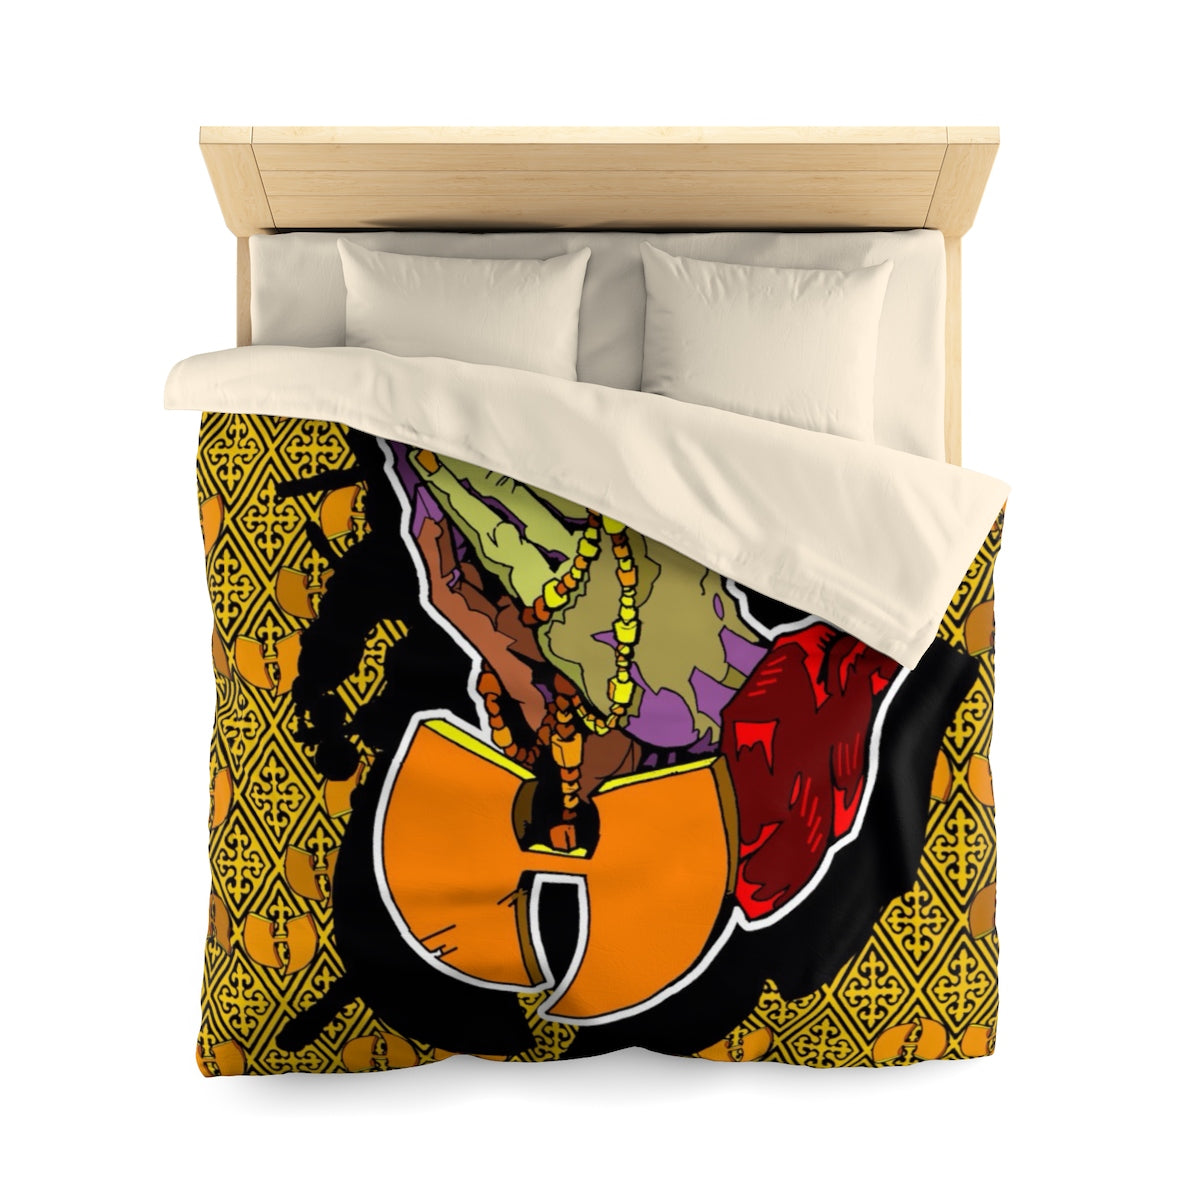 HRMI BLESSED Official HellRazah Music Inc. Designer Microfiber Duvet Cover - HeavenRazah